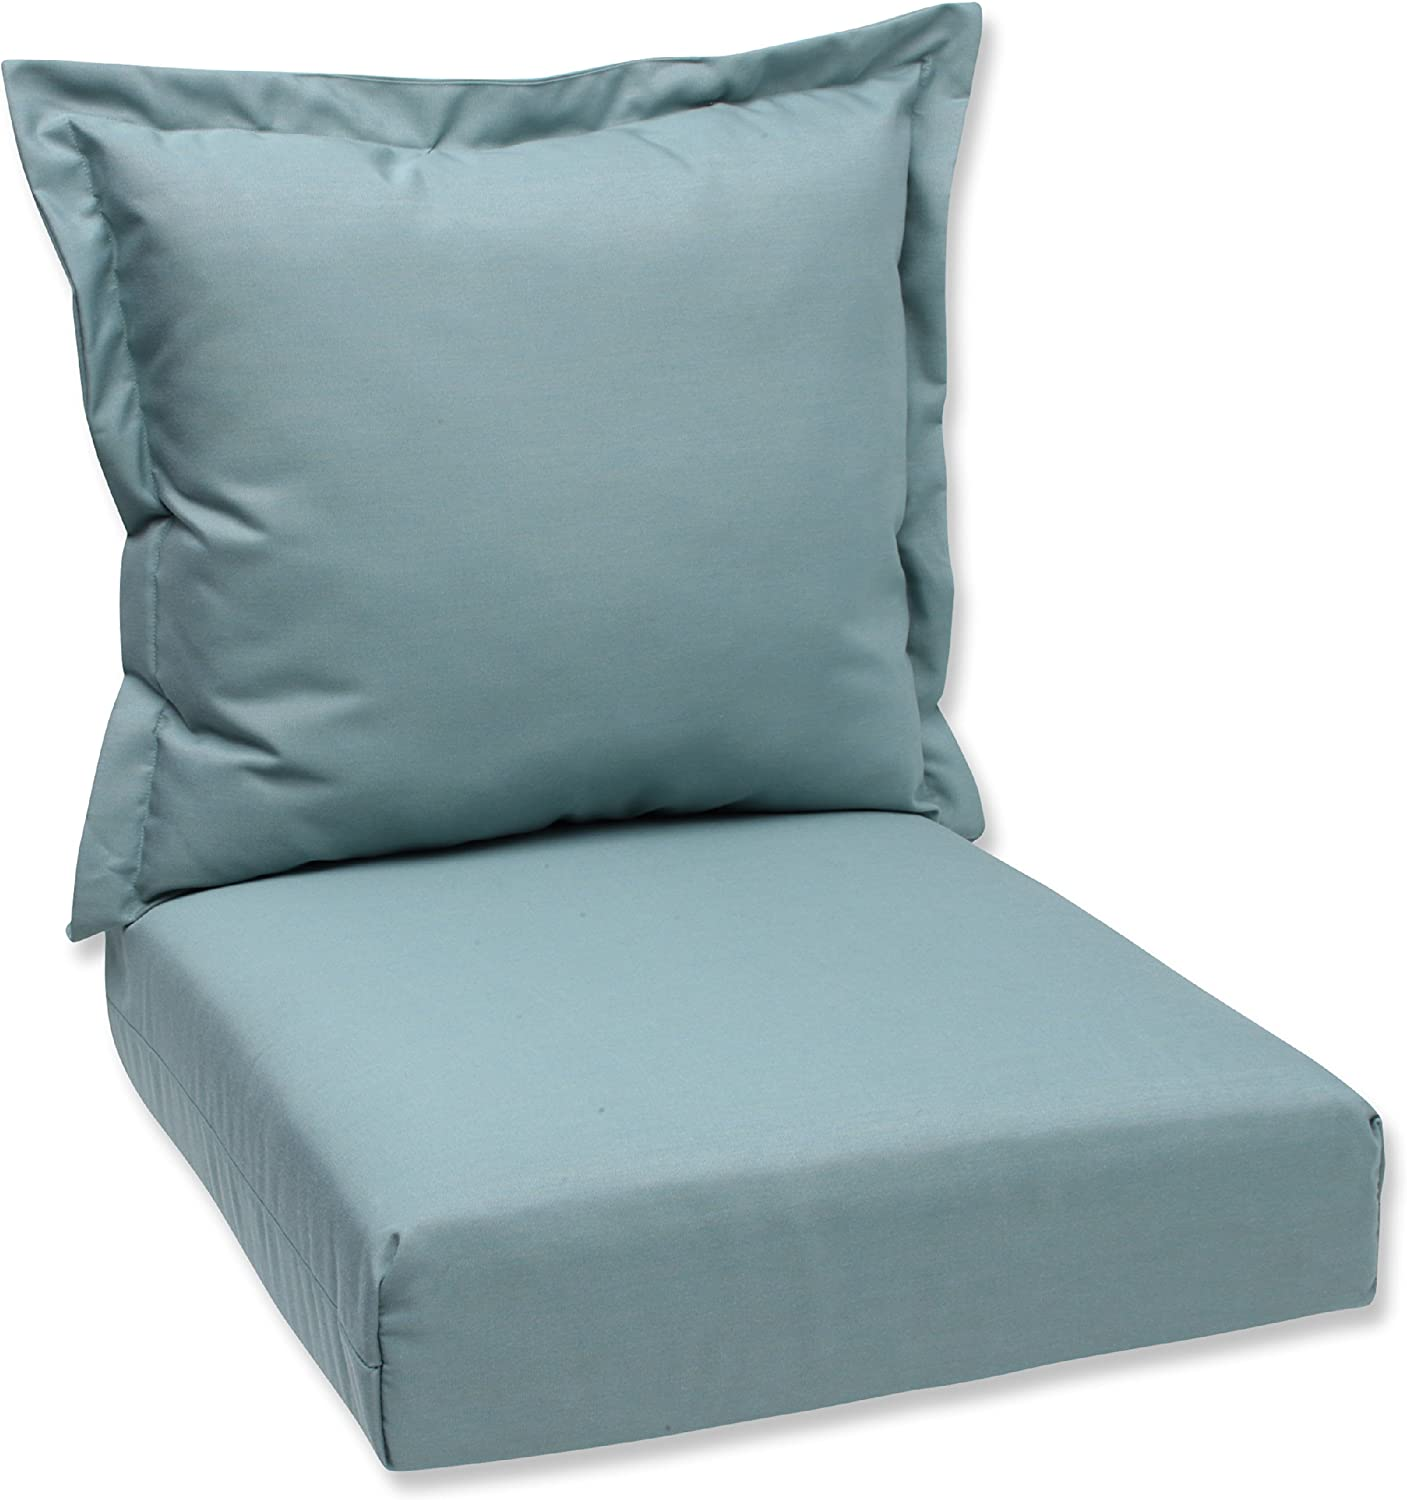 Indoor  Outdoor Tufted Wicker Chair Seat Cushion Sunbrella Canvas Pacific Blue Wicker Chair Cushion Choose Size